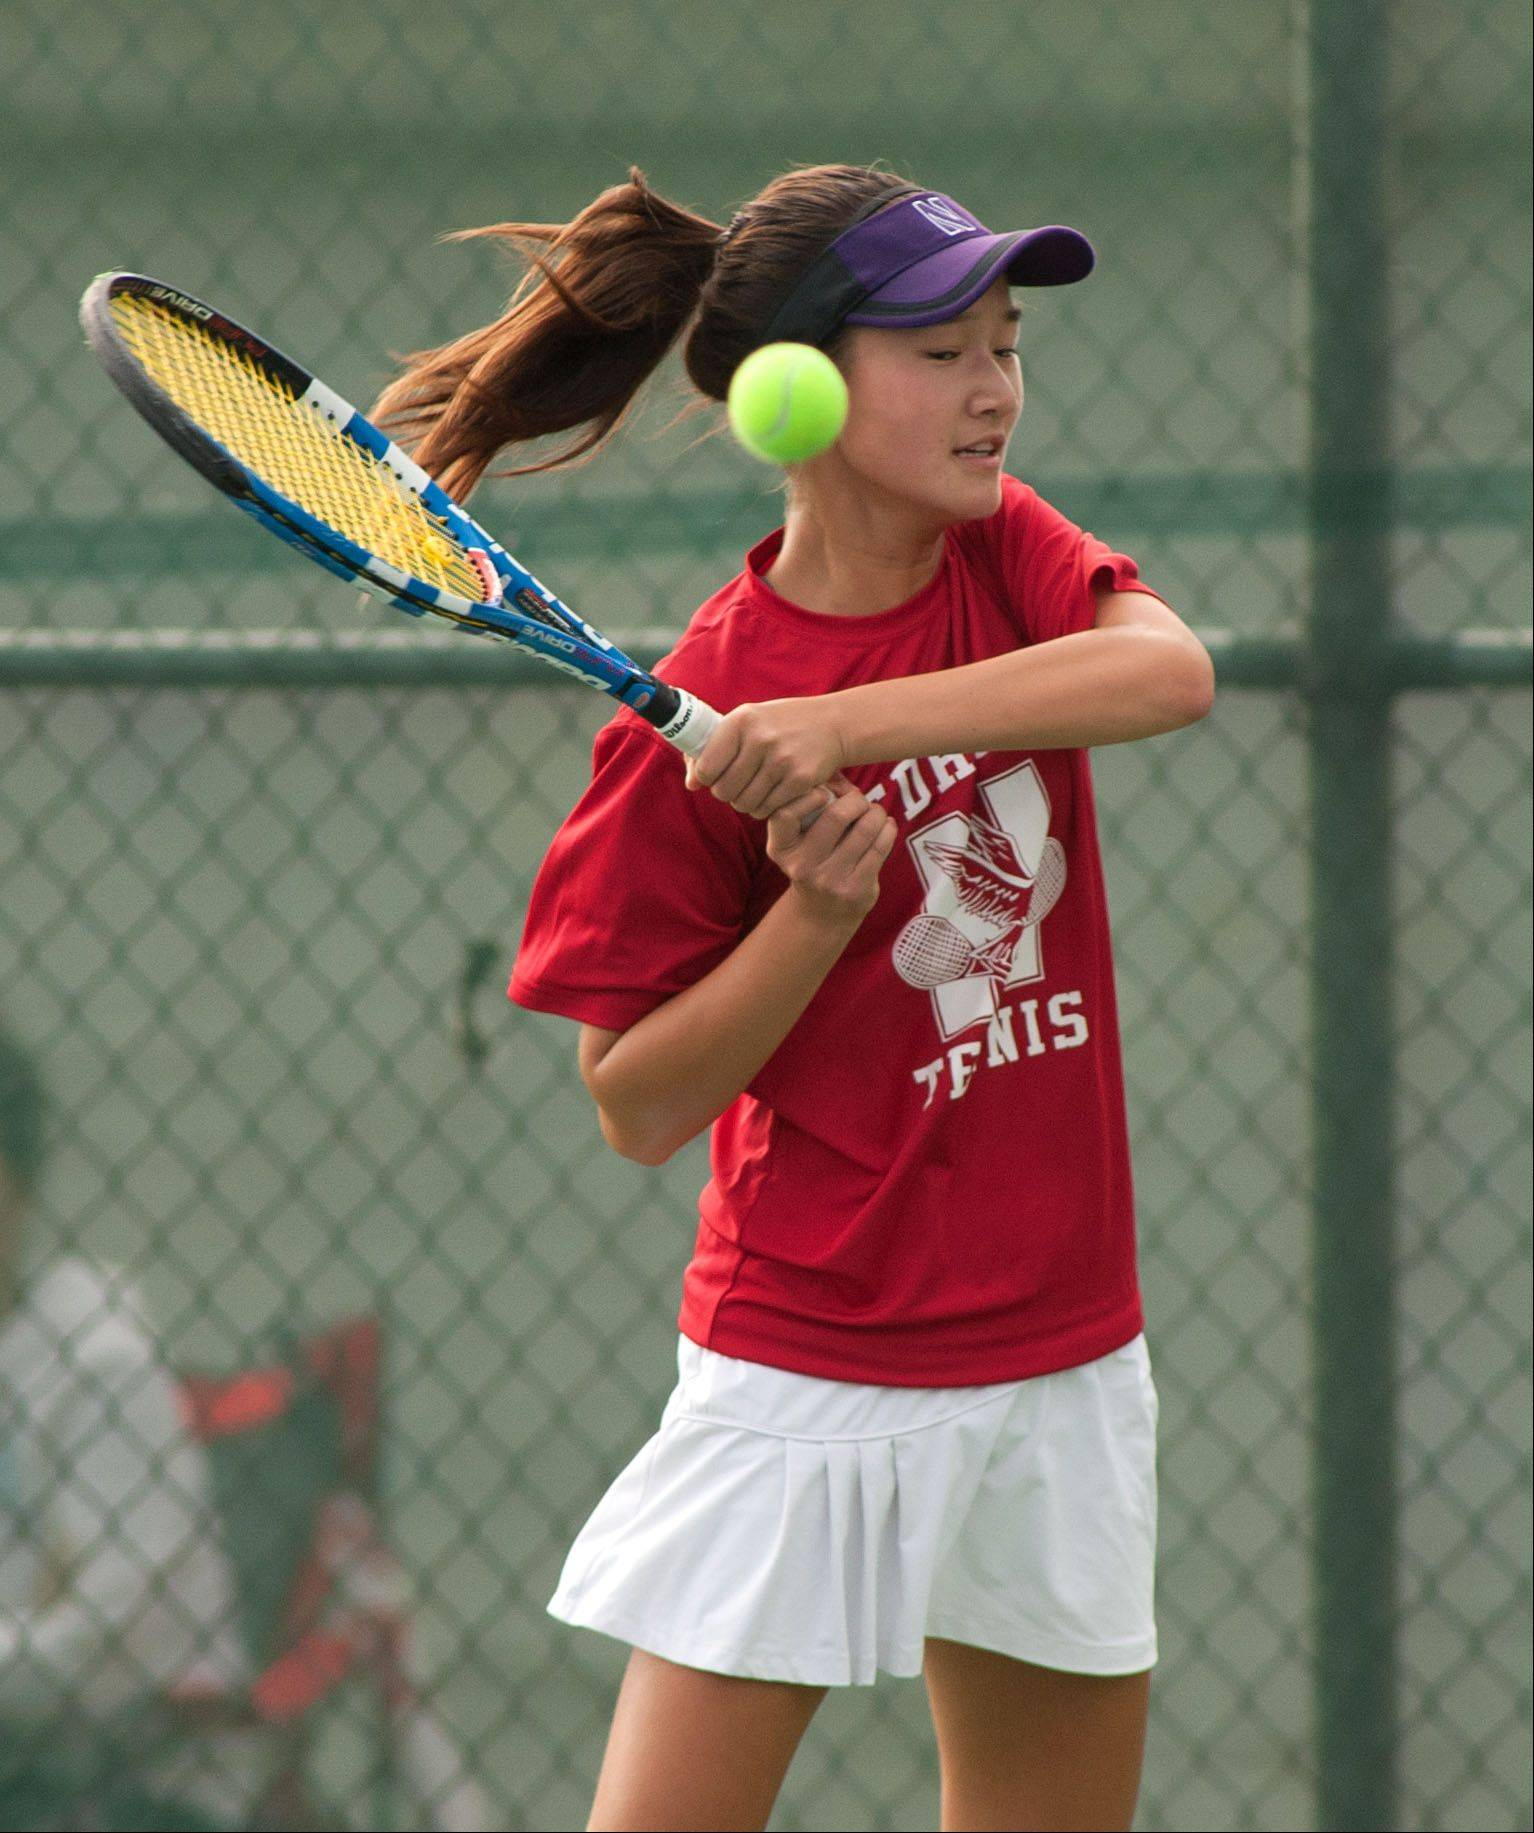 Naperville Central�s Tiffany Chen returns a volley during the DuPage Valley girls tennis finals at Naperville Central.